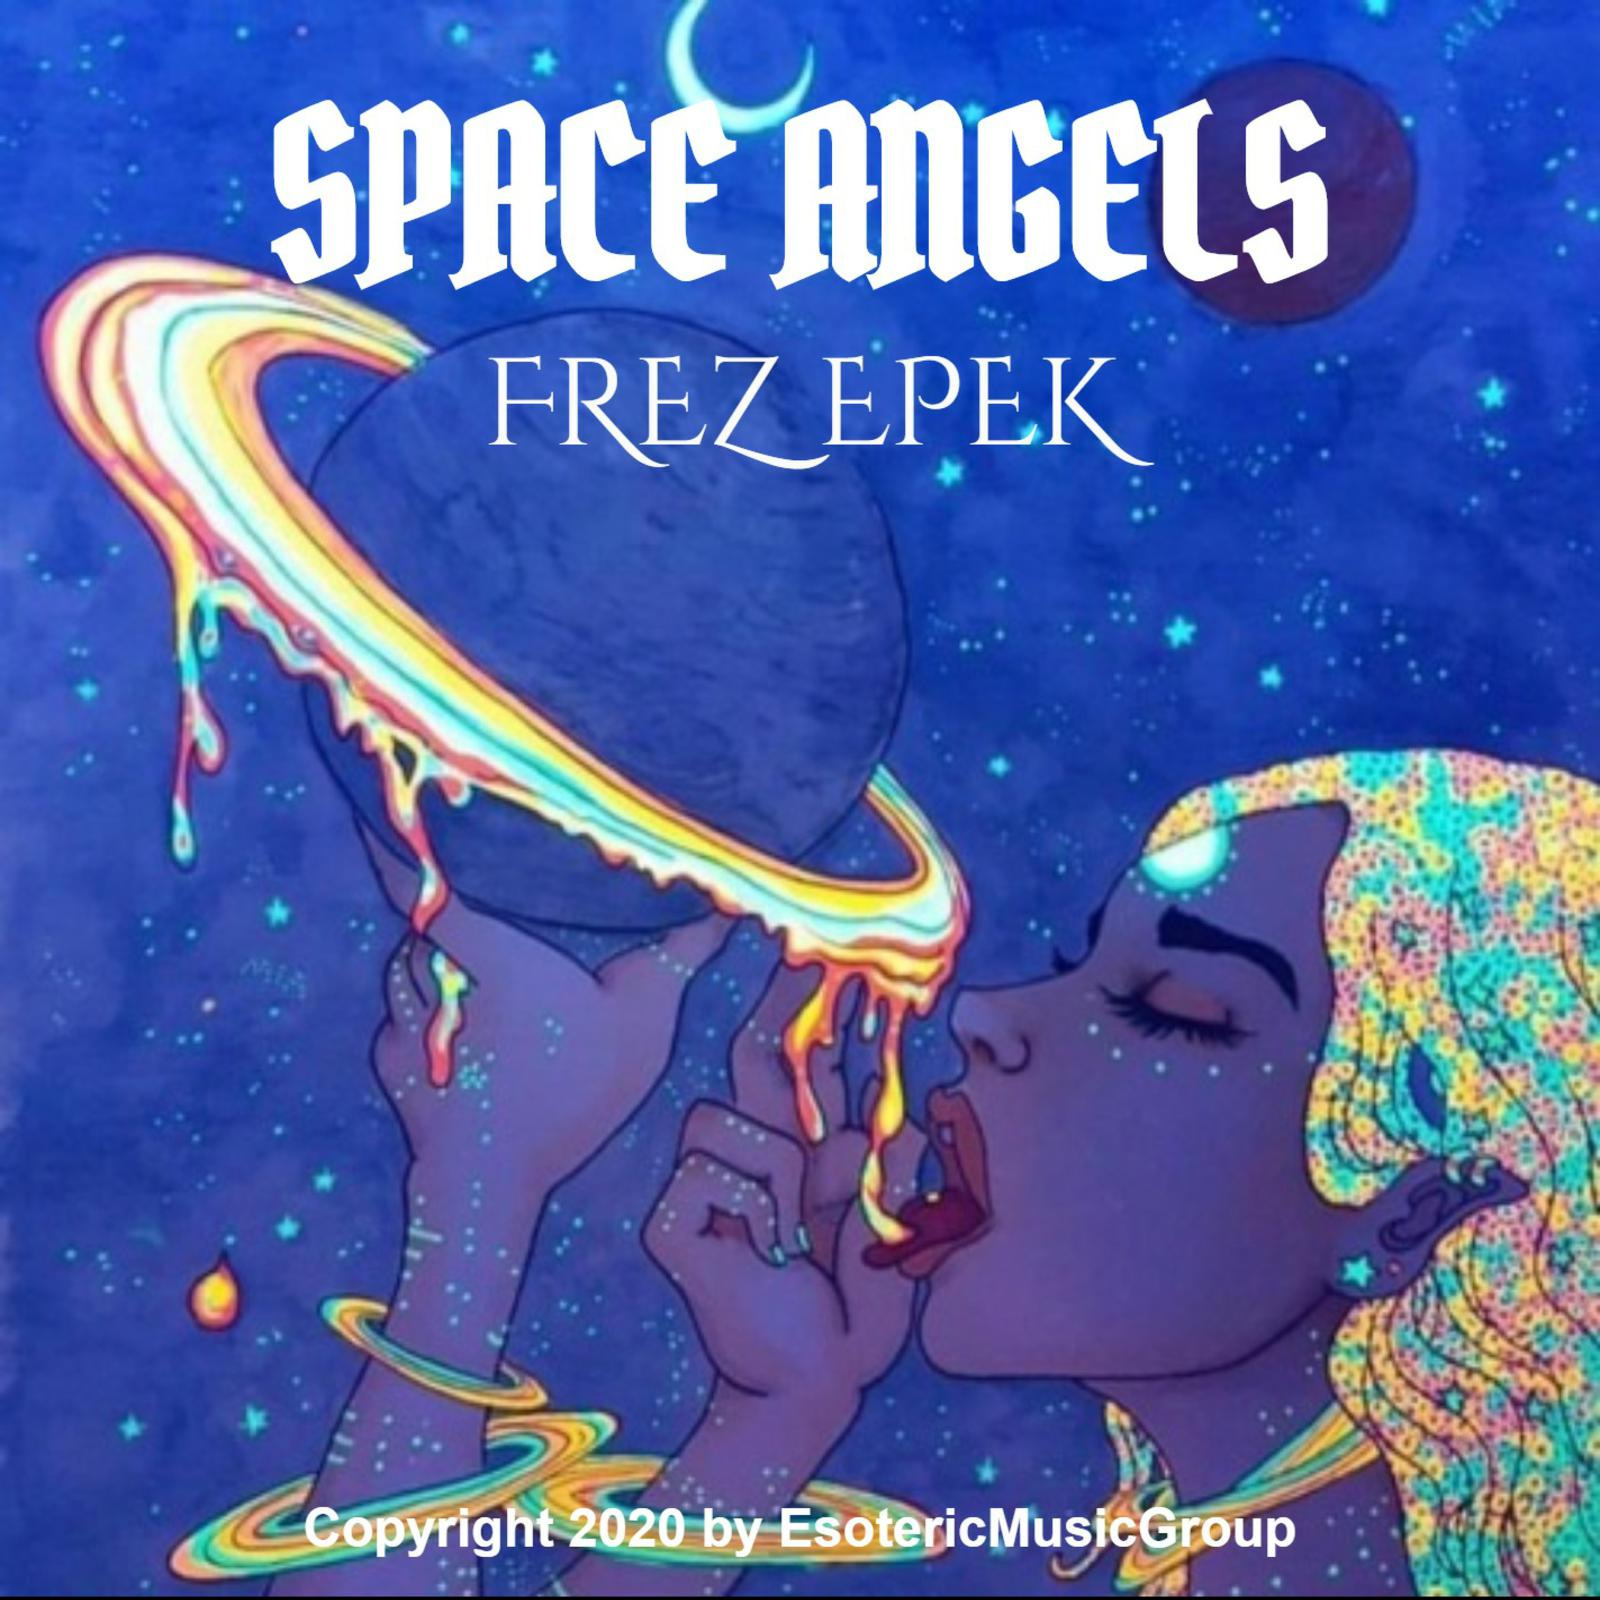 """SPACE ANGELS"" prt1 By FREZ EPEK digital download track  7 A Plus"